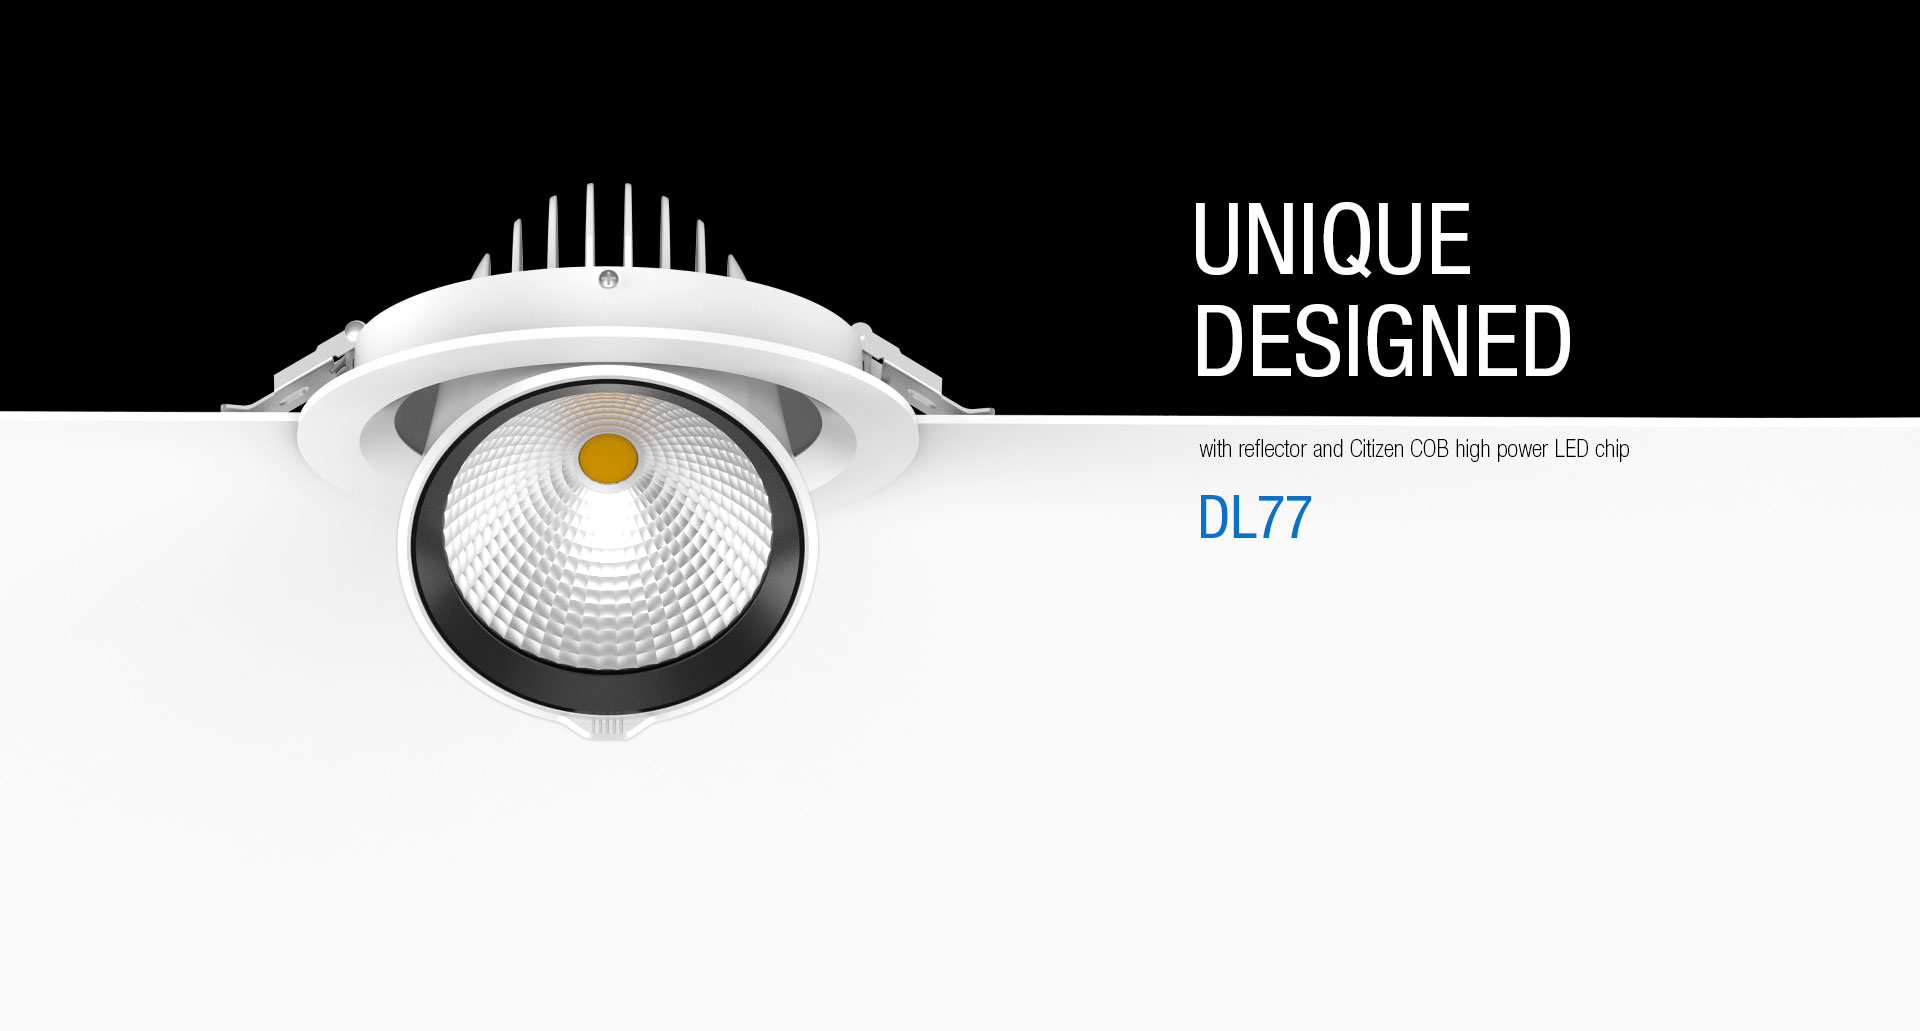 DL77 Citizen COB LED Downlight_01